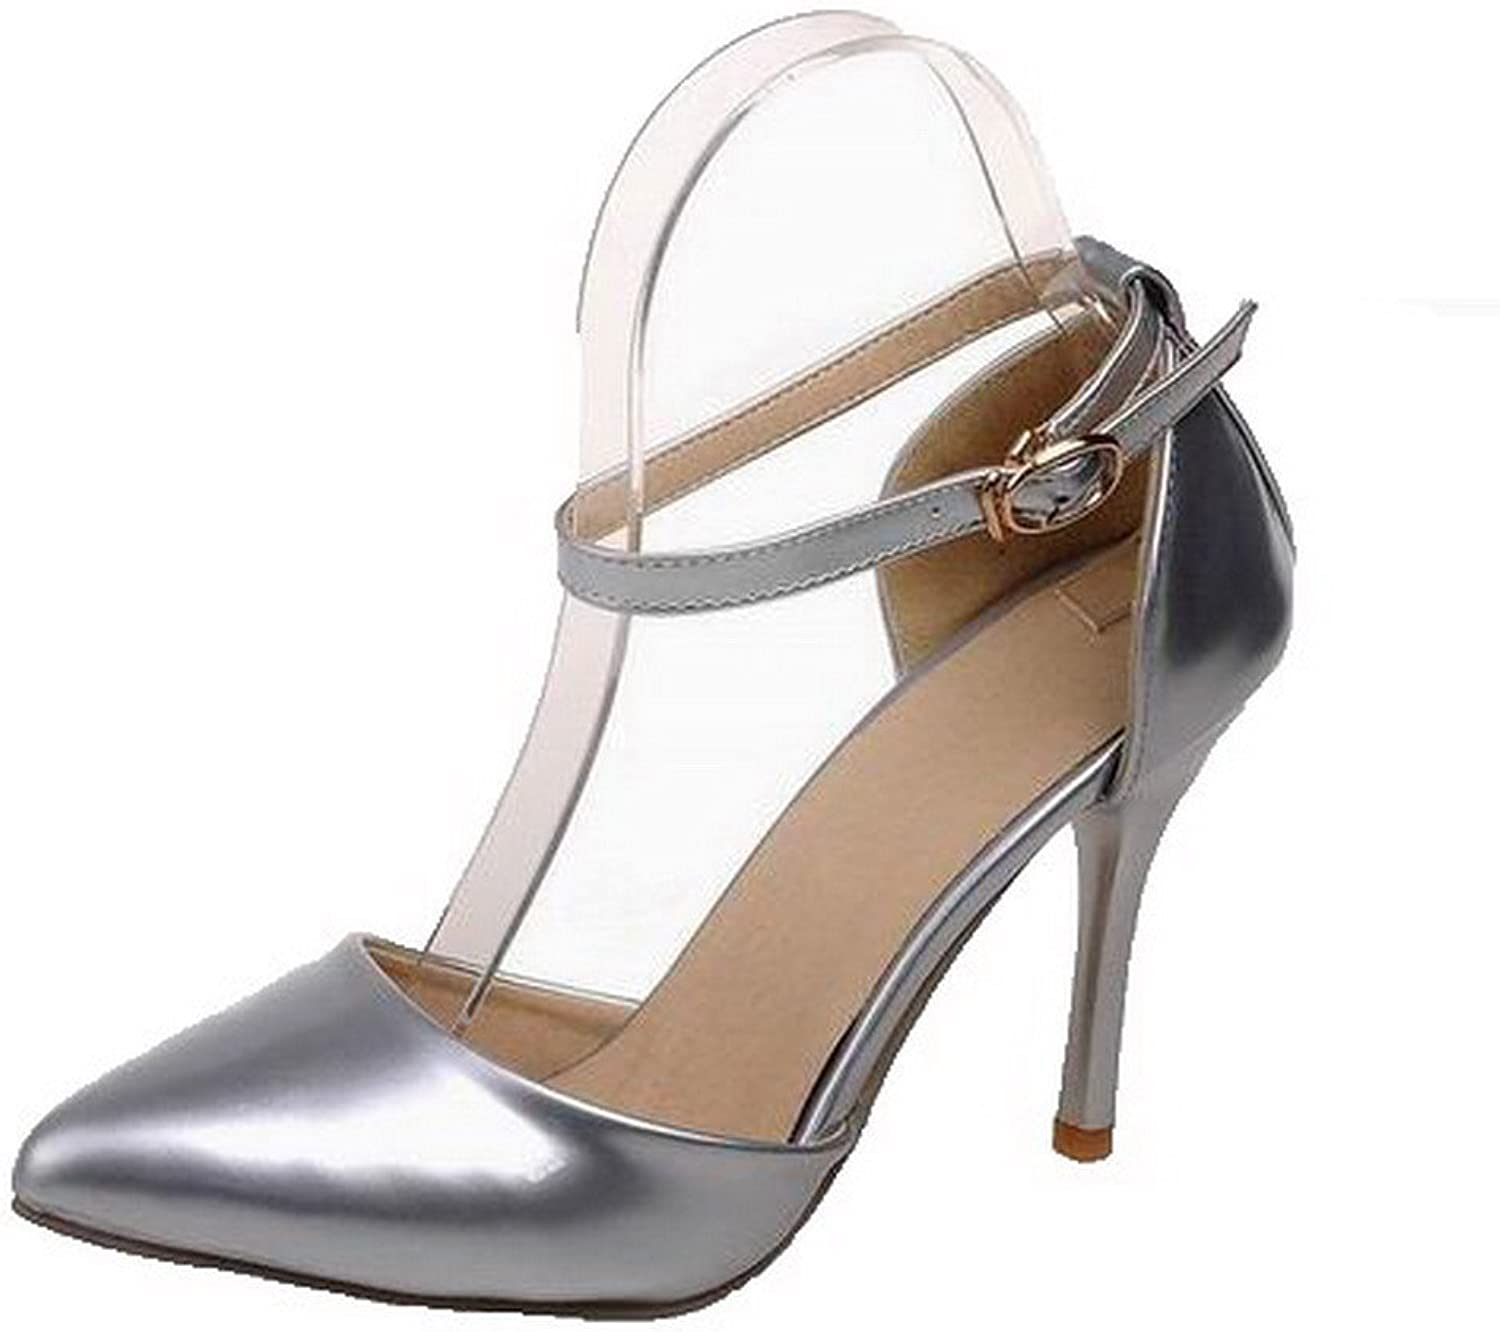 AllhqFashion Women's Buckle Patent Leather High-Heels Solid Sandals, FBULD014151